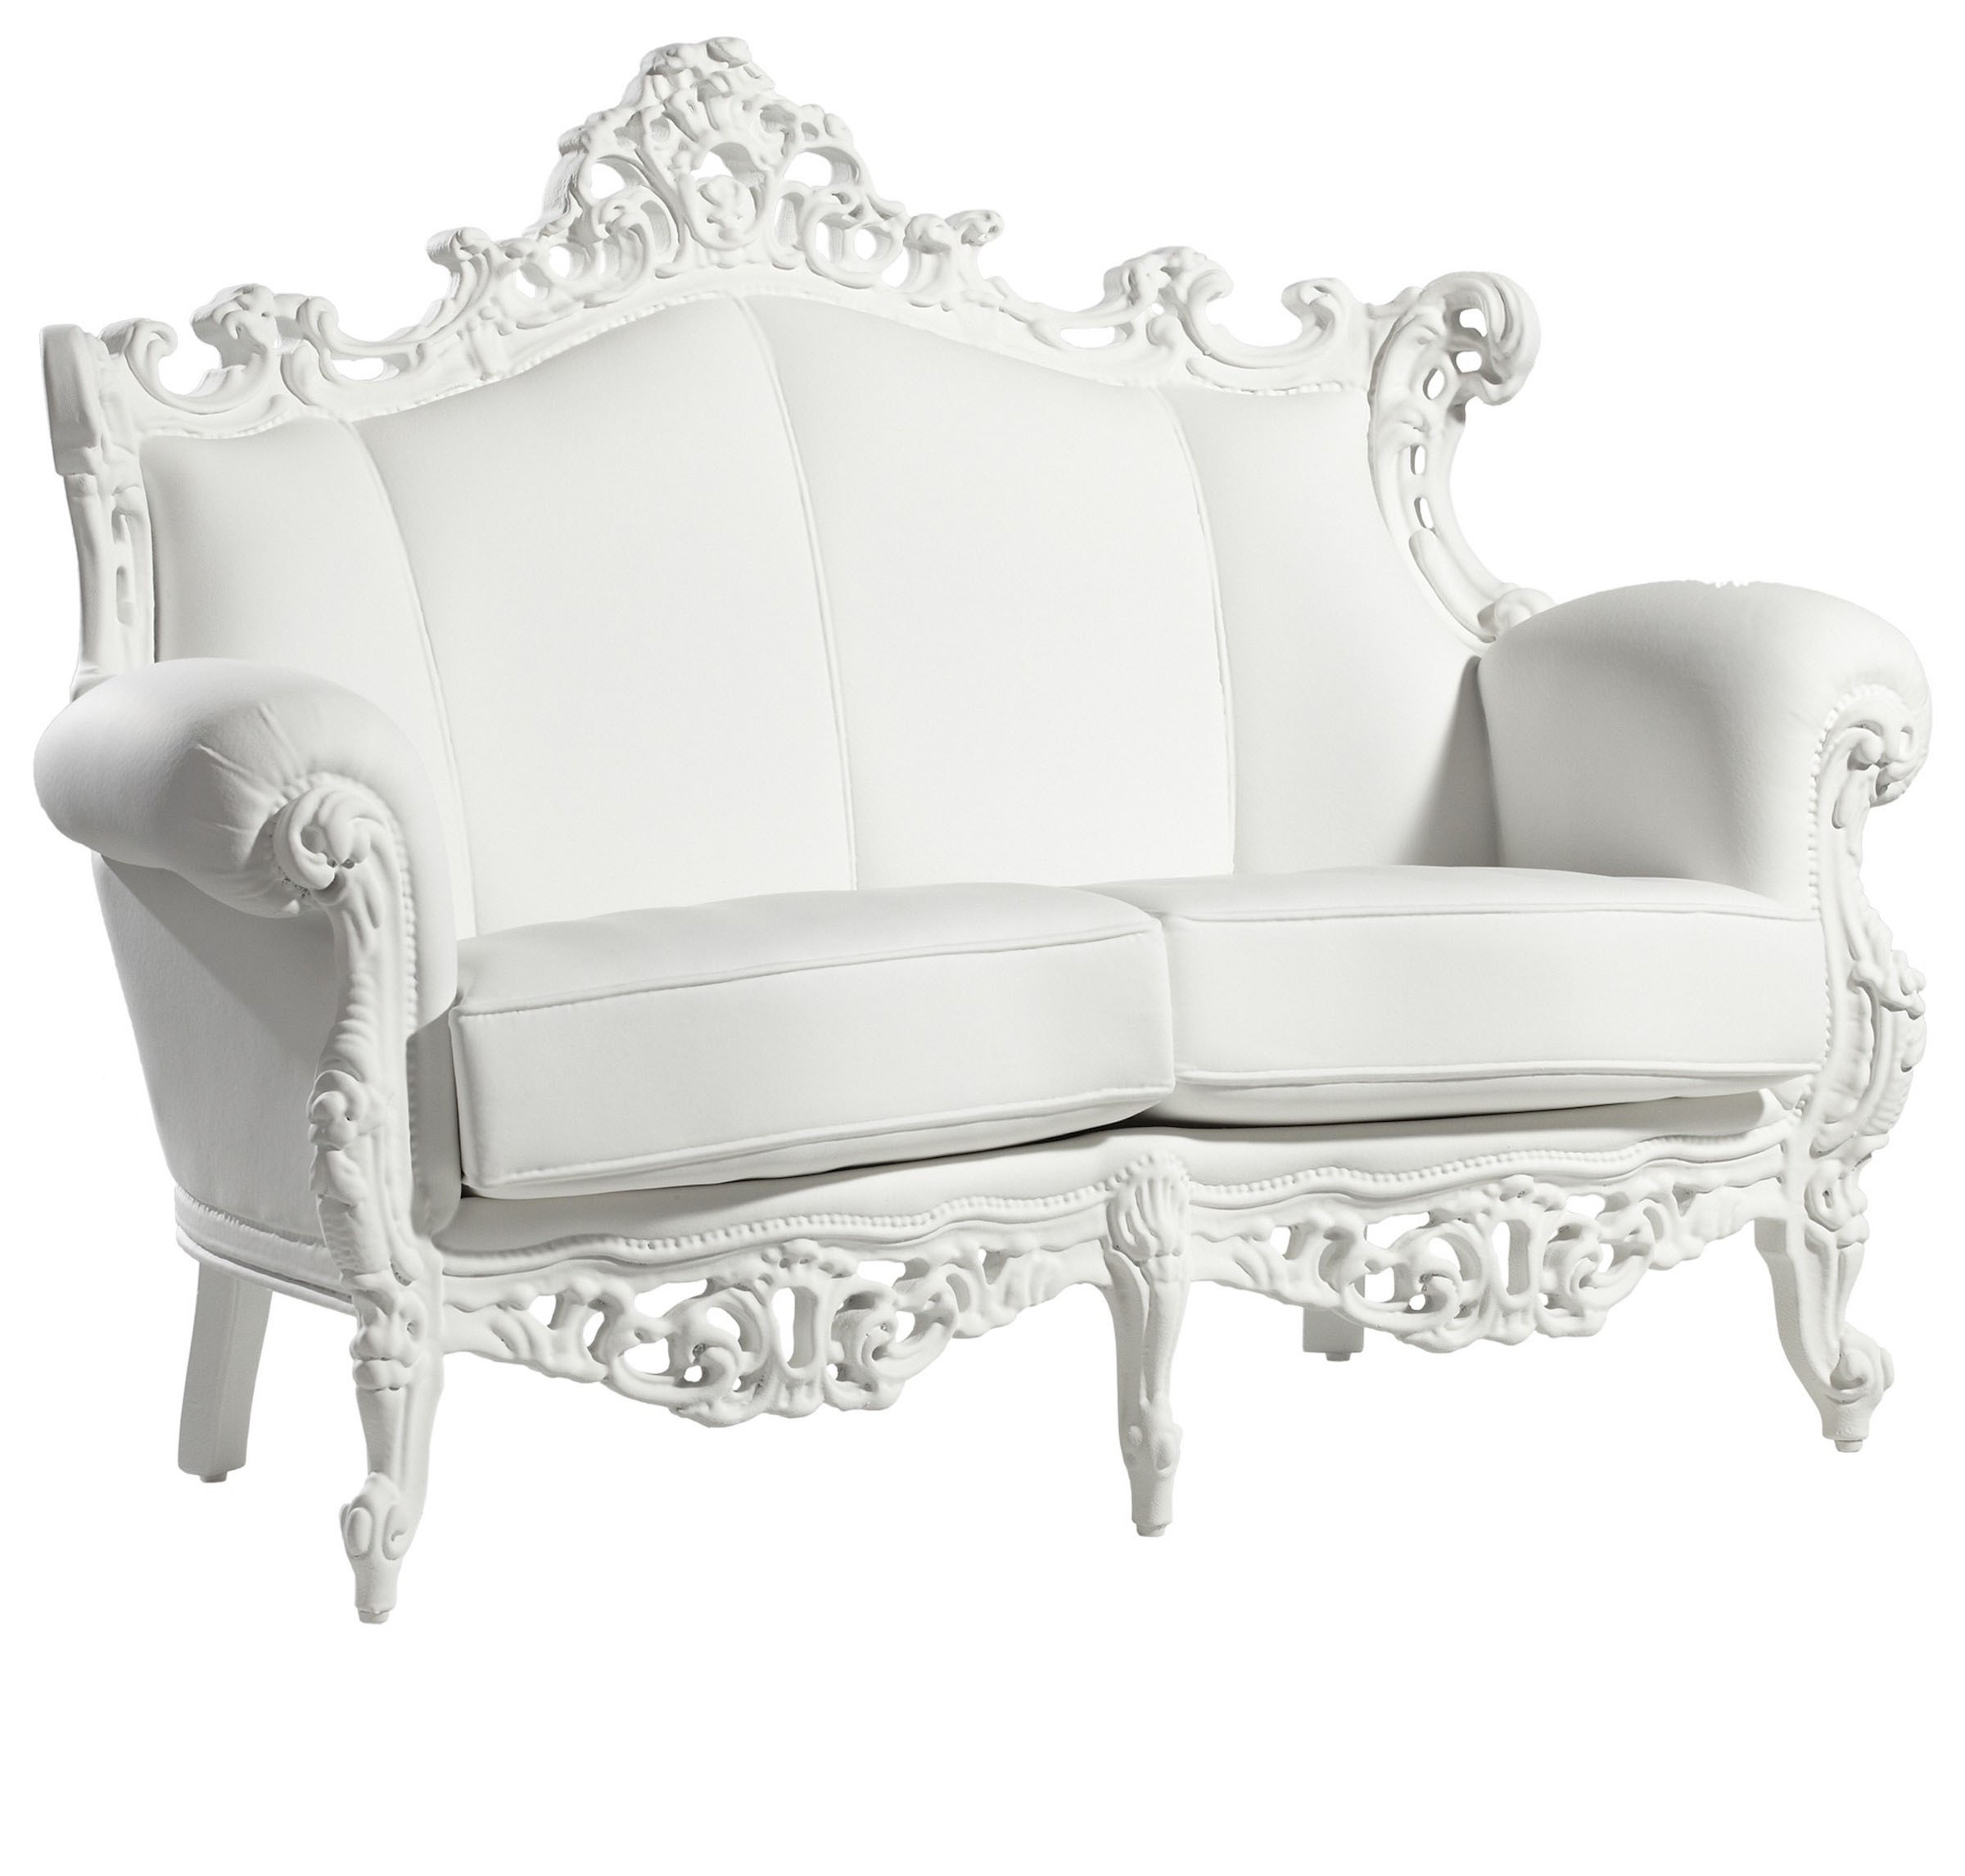 Louis IIB Loveseat